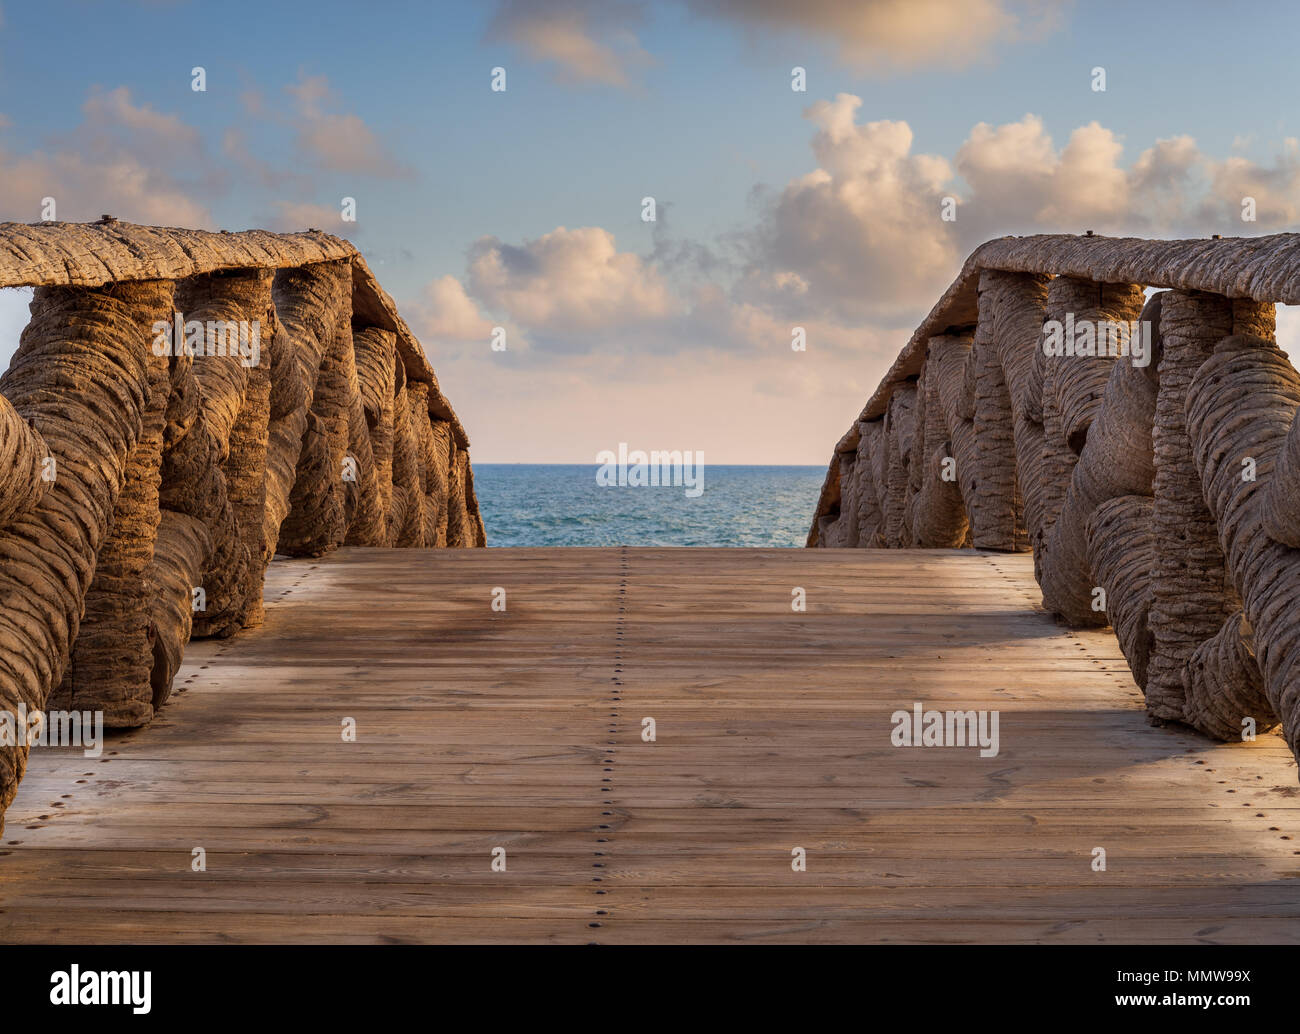 Wooden bridge made of palm trunks leading to the sea coast with partly cloudy sky in sunrise time at Montaza public park in summer time, Alexandria, E - Stock Image